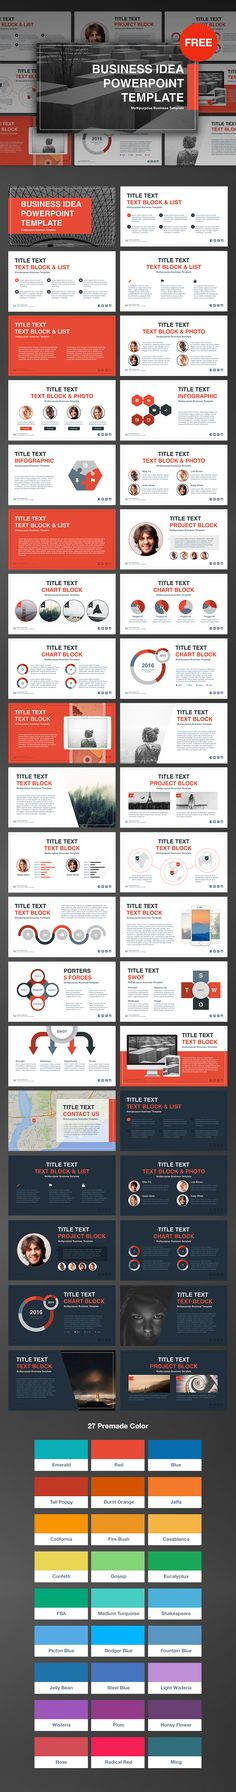 """FREE DOWNLOAD PowerPoint Template: https://hislide.io/product/business-idea-free-powerpoint-template/ 31 slides, PPTX format, 16:9 HD, free support, 27 premade color, """"drag & drop"""", light & dark versions. #free #freebie #freebies #ppt #pptx #powerpoint #template #theme #site2max #design #red #emerald #hd #business #idea #marketing"""